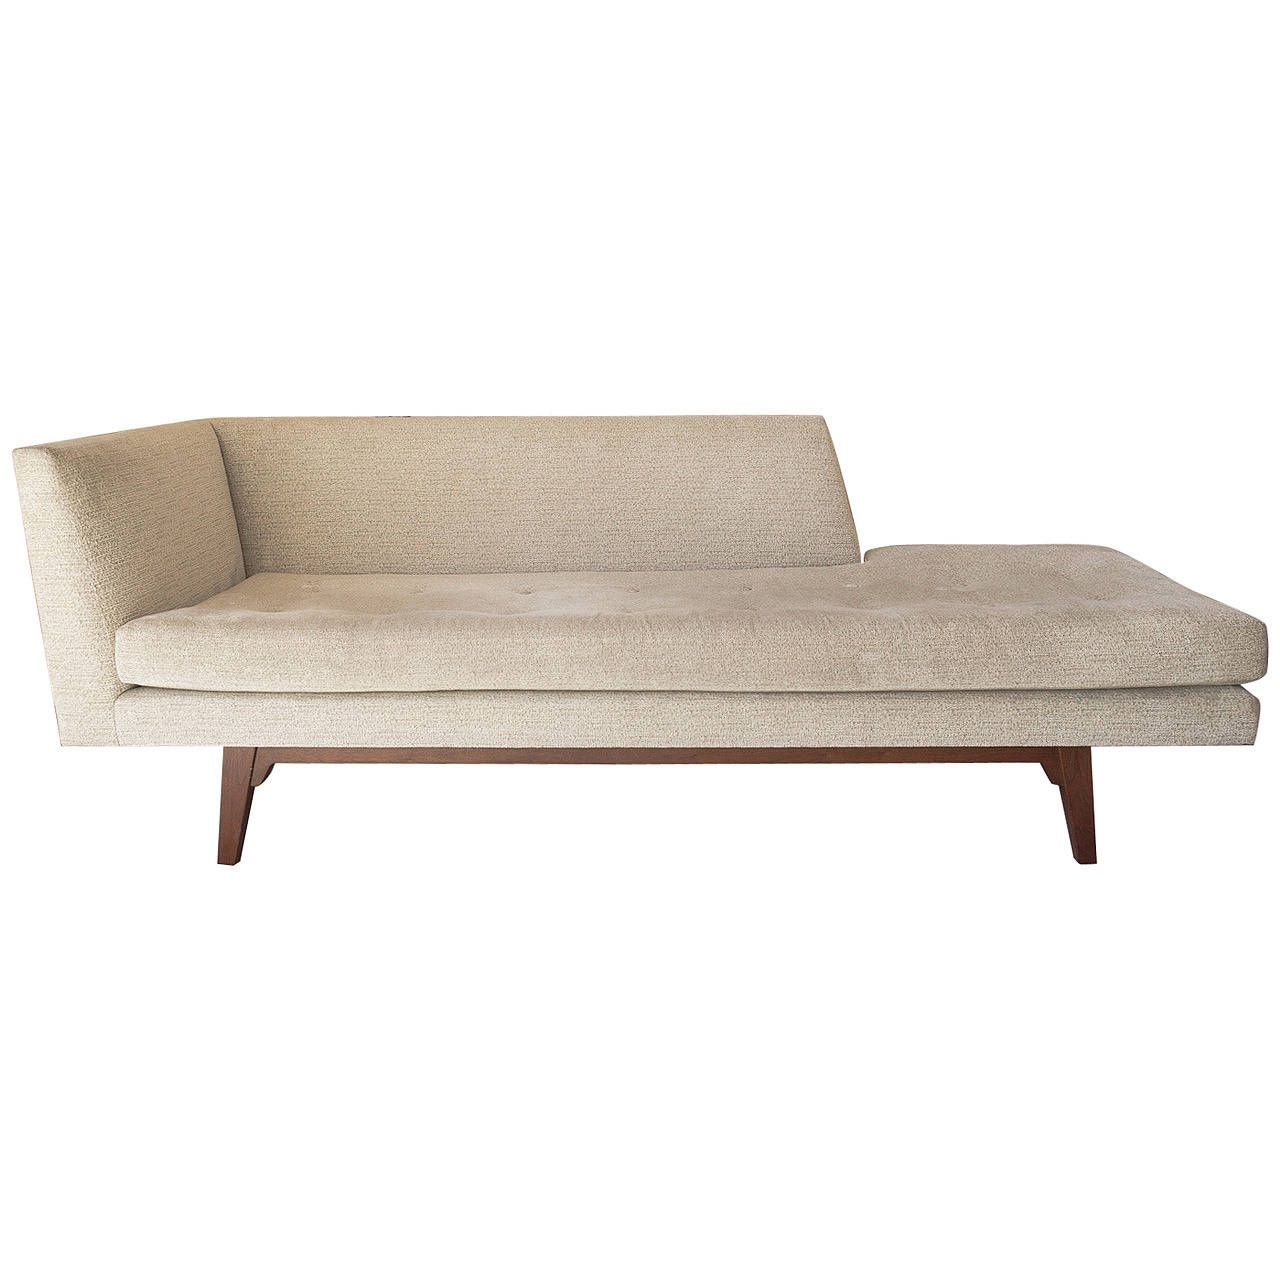 Edward wormley for dunbar chaise longue edward wormley for Antique chaise longues